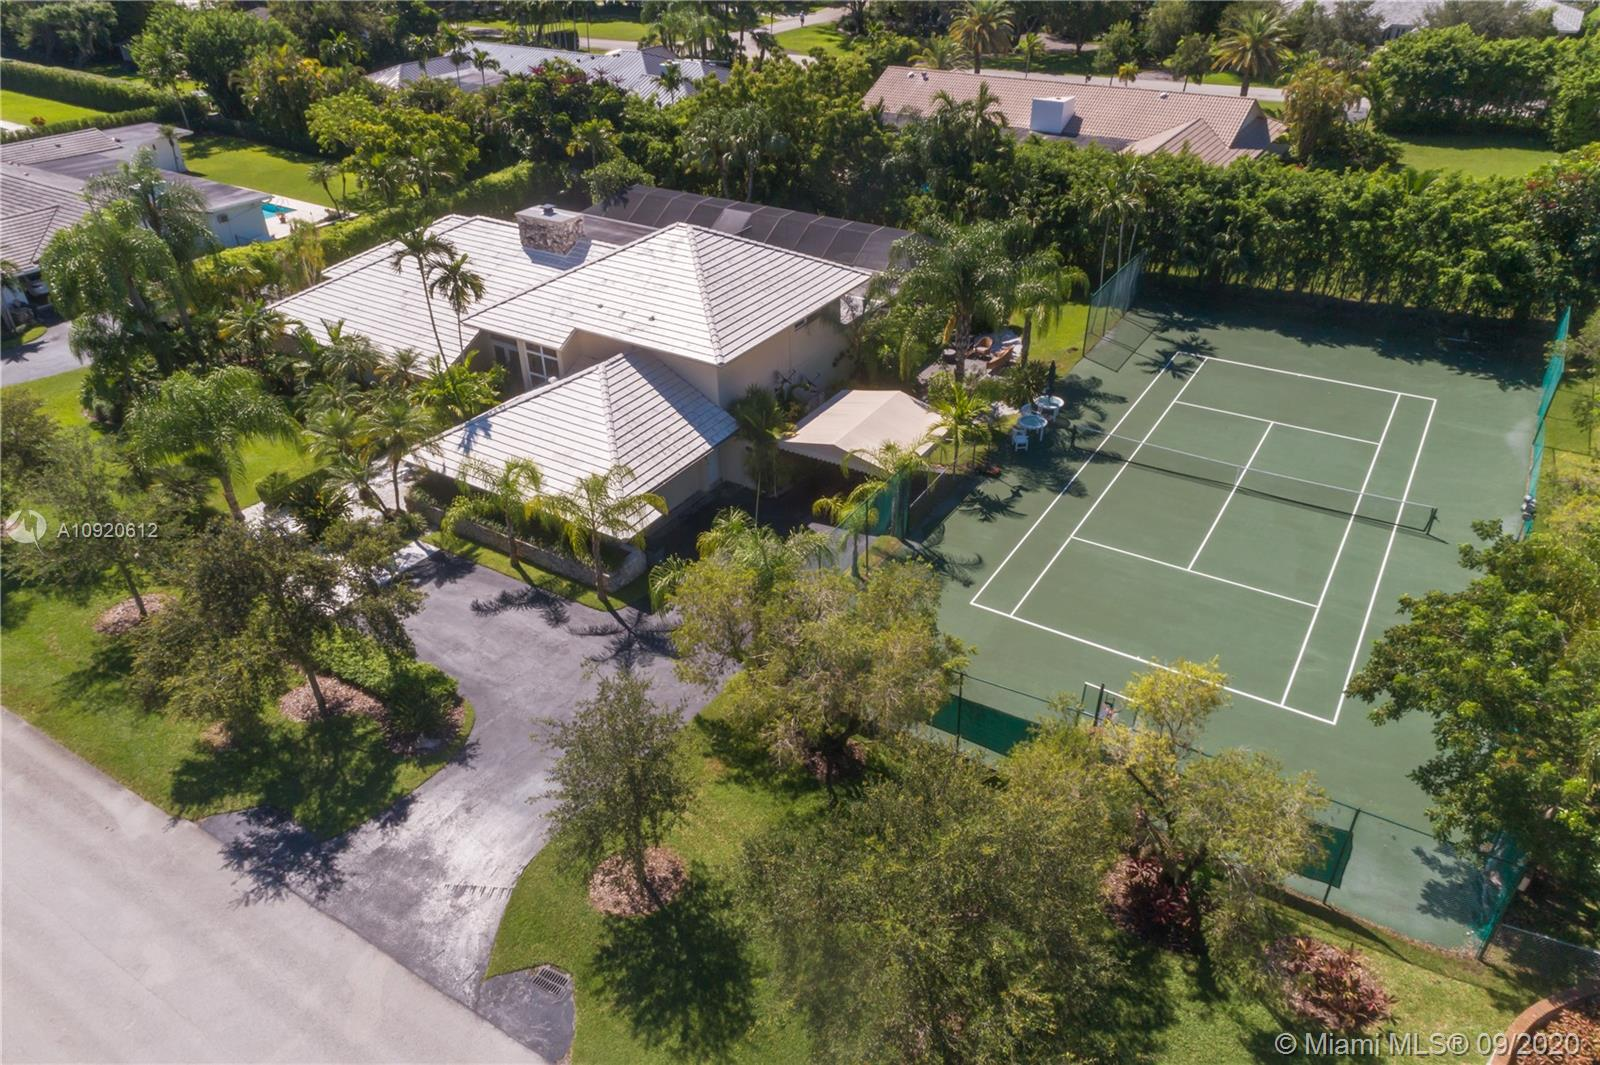 """North/South Tennis Court home in Pine Bay Estates! Resort style family retreat in premier Gables/Pinecrest. Light filled 5/3.5 + """"bonus room"""". Full home generator, new impact windows & doors, 2016 roof, 3 new zoned A/Cs. Designed for entertaining, indoor/outdoor living with summer kitchen, full bar, fireplace, and newly surfaced pool. Children's wing includes 4 bedrooms, 2 baths. Private, spacious upstairs master suite with treetop terrace overlooking tennis & basketball court. 24 hour patrolled neighborhood security. Next to Old Cutler bike trails, Pinecrest parks, and coveted private and public schools."""